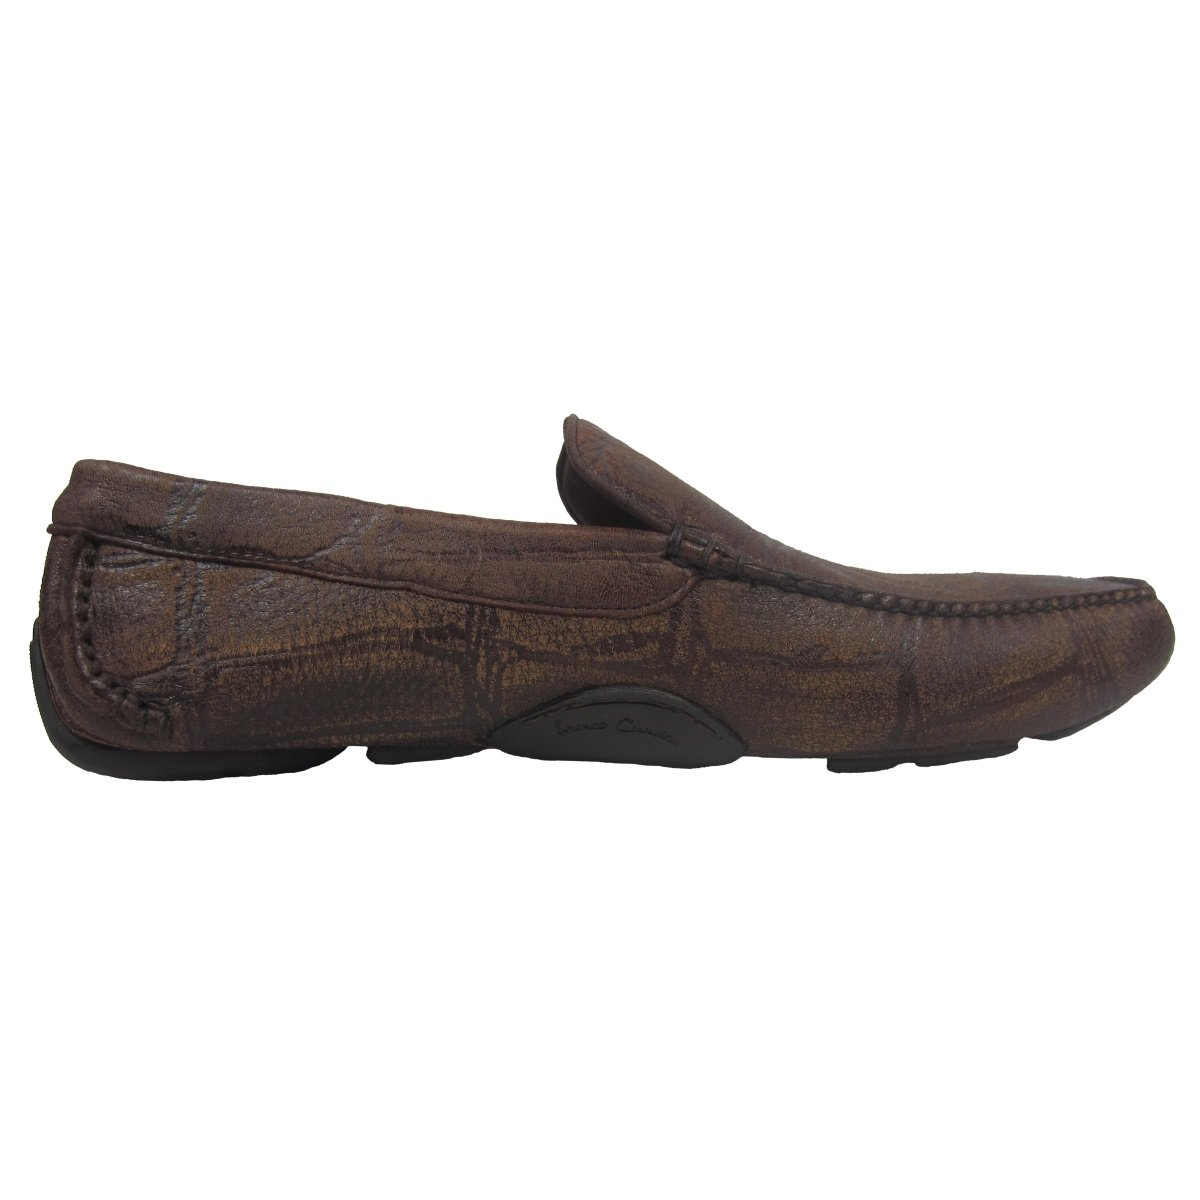 Amazon.com | CORRAL Franco Cuadra for Men Driving Shoes | Shoes